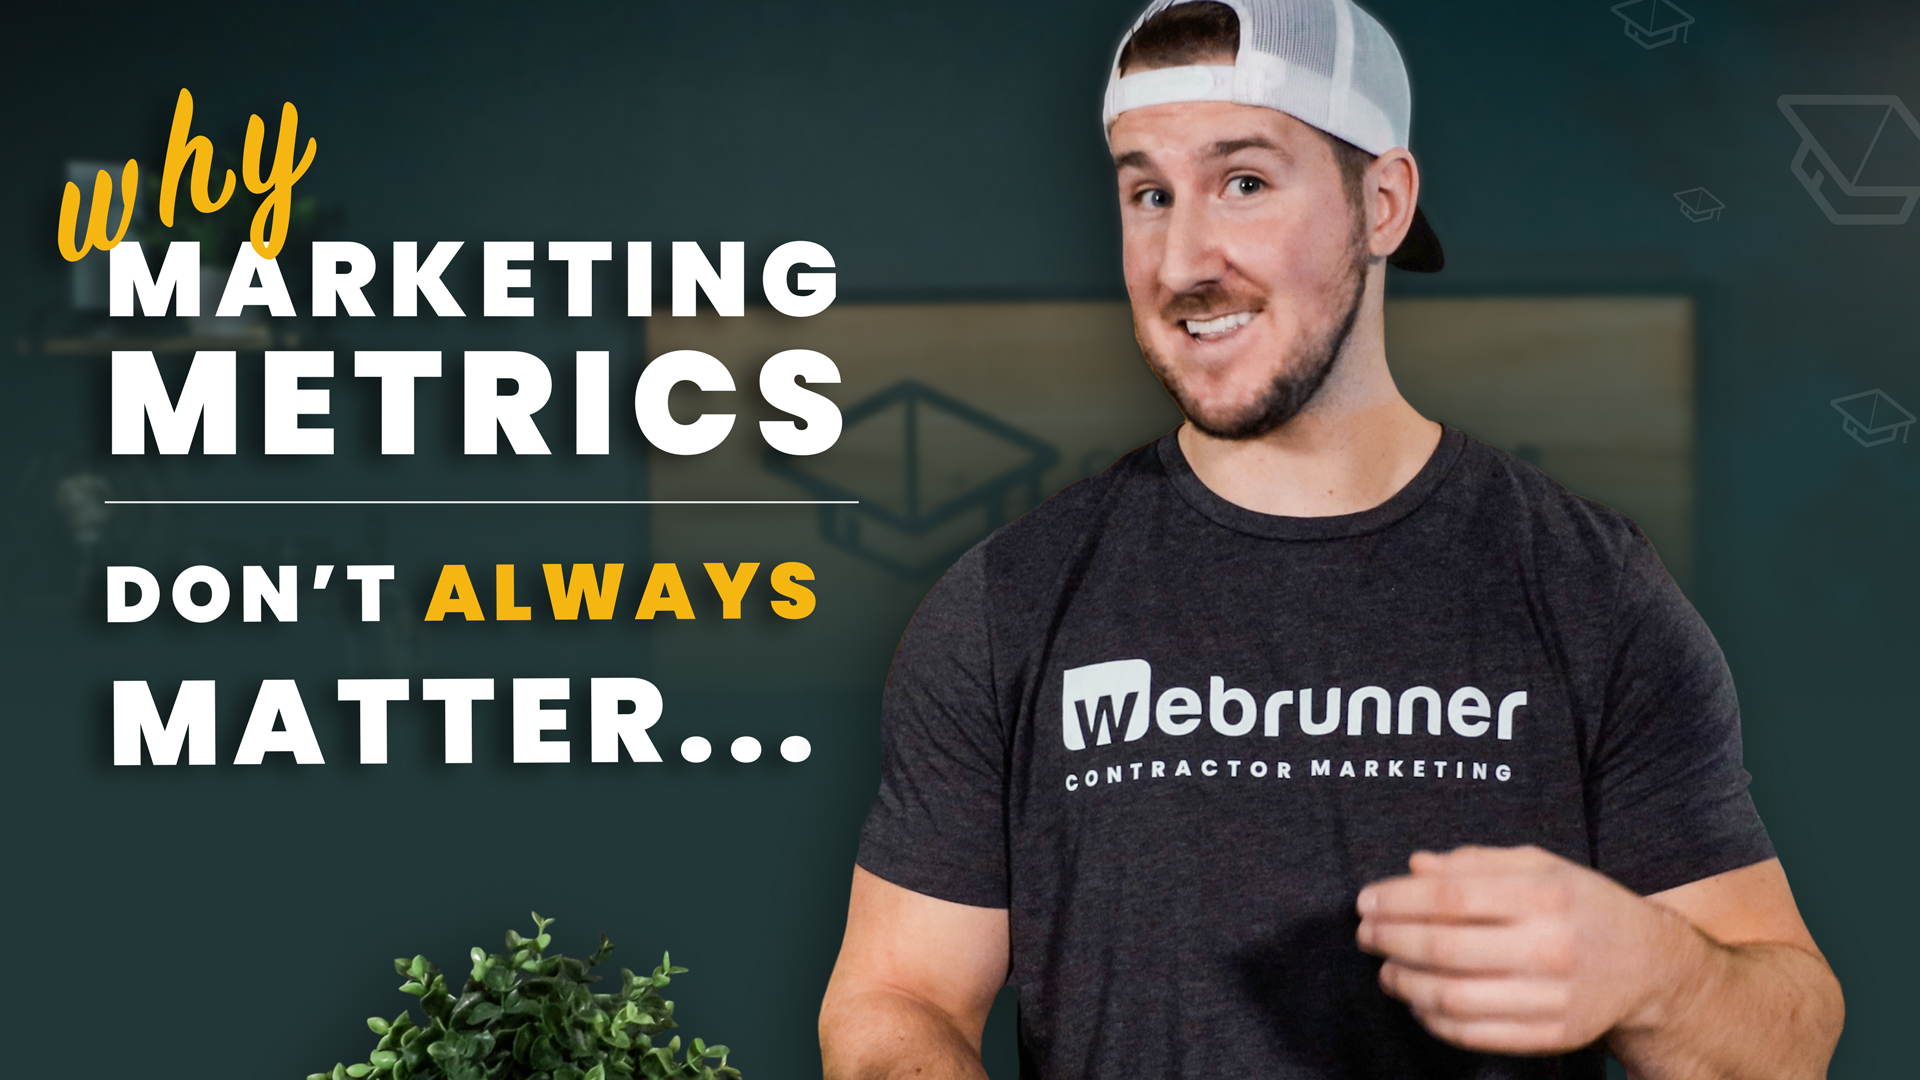 Marketing Minutes - The Right Marketing Metrics with Ben Levesque